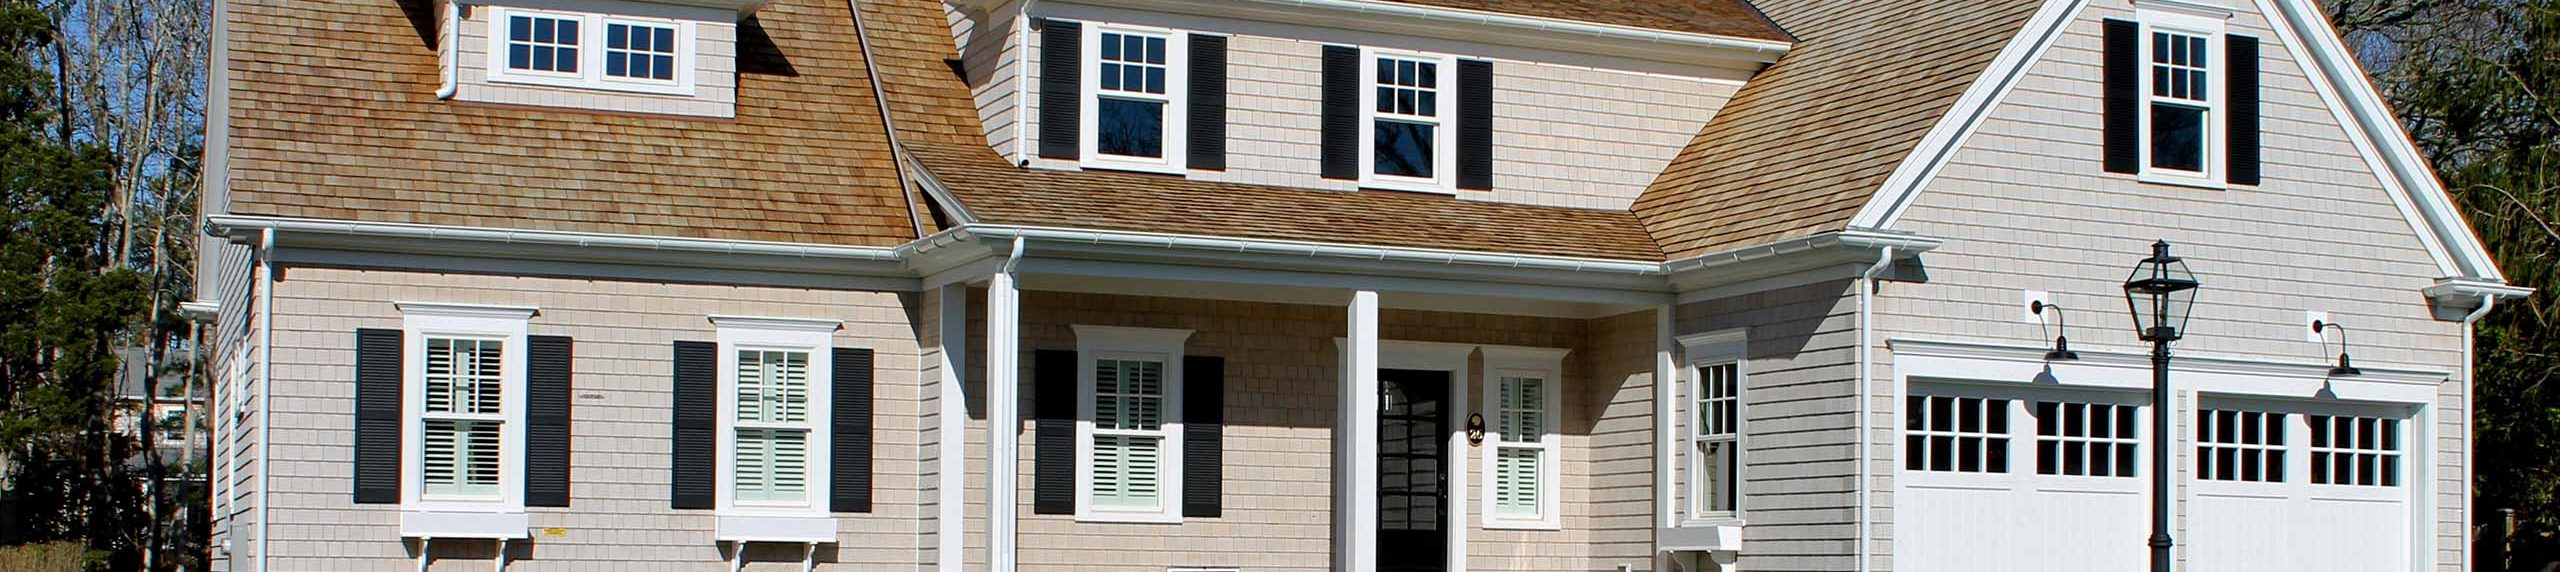 New Custom Home in Osterville on Cape Cod